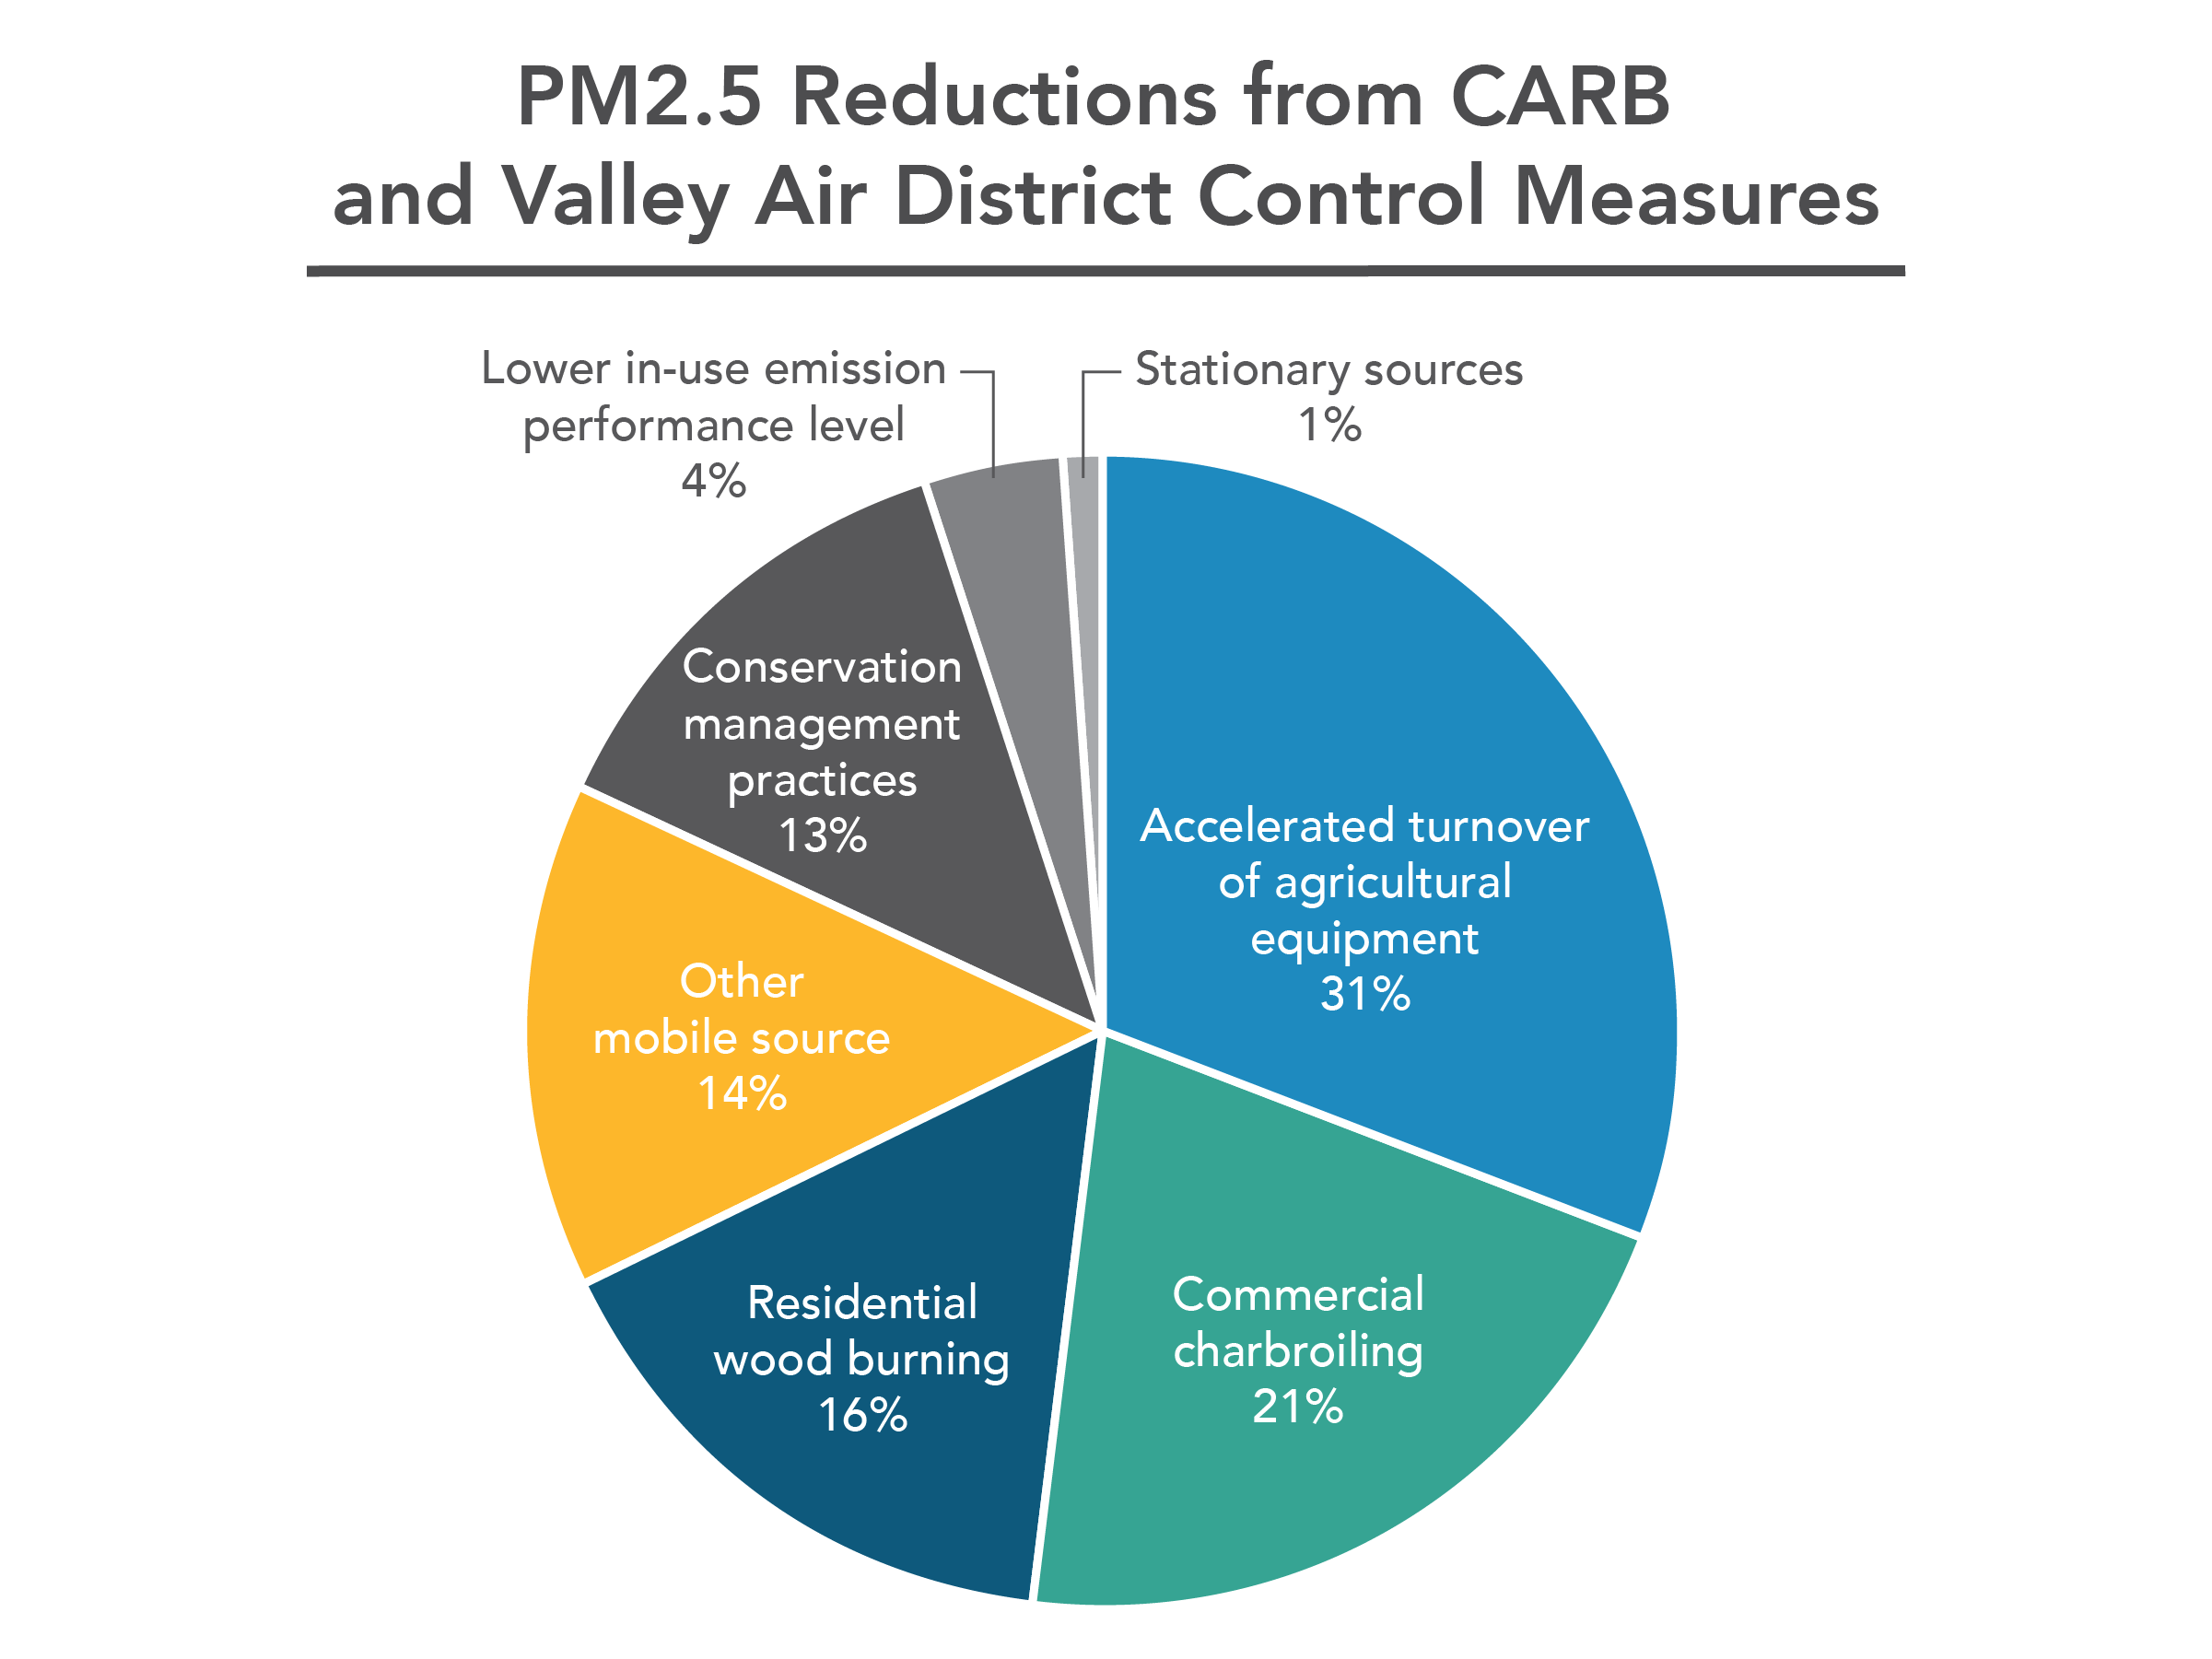 PM2.5 Reductions from CARB and Valley Air District Control Measures